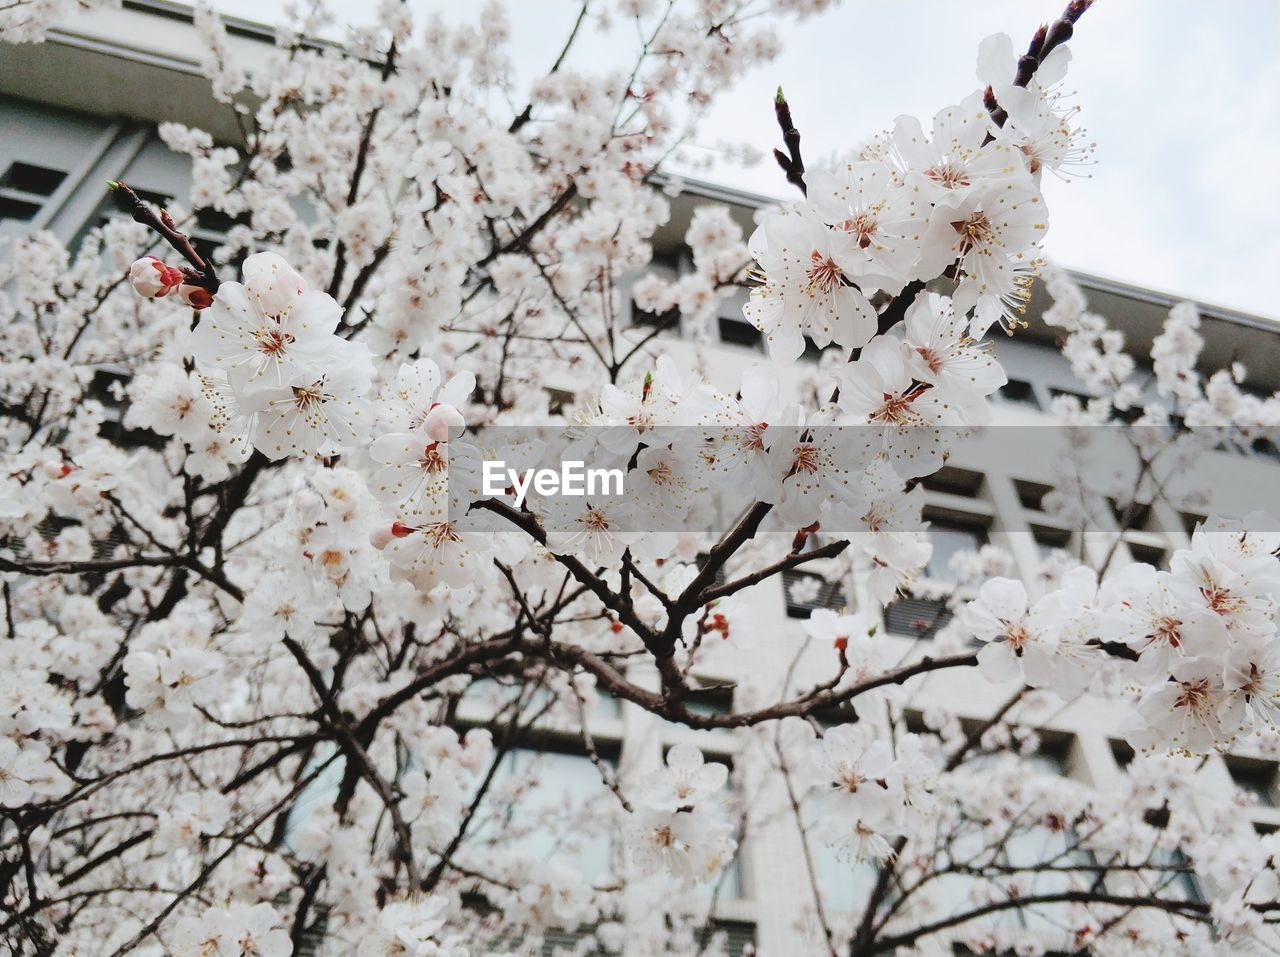 flower, cherry blossom, blossom, tree, fragility, cherry tree, springtime, branch, beauty in nature, apple blossom, growth, freshness, apple tree, nature, low angle view, orchard, white color, botany, petal, no people, blooming, twig, day, outdoors, plum blossom, flower head, architecture, building exterior, sky, built structure, close-up